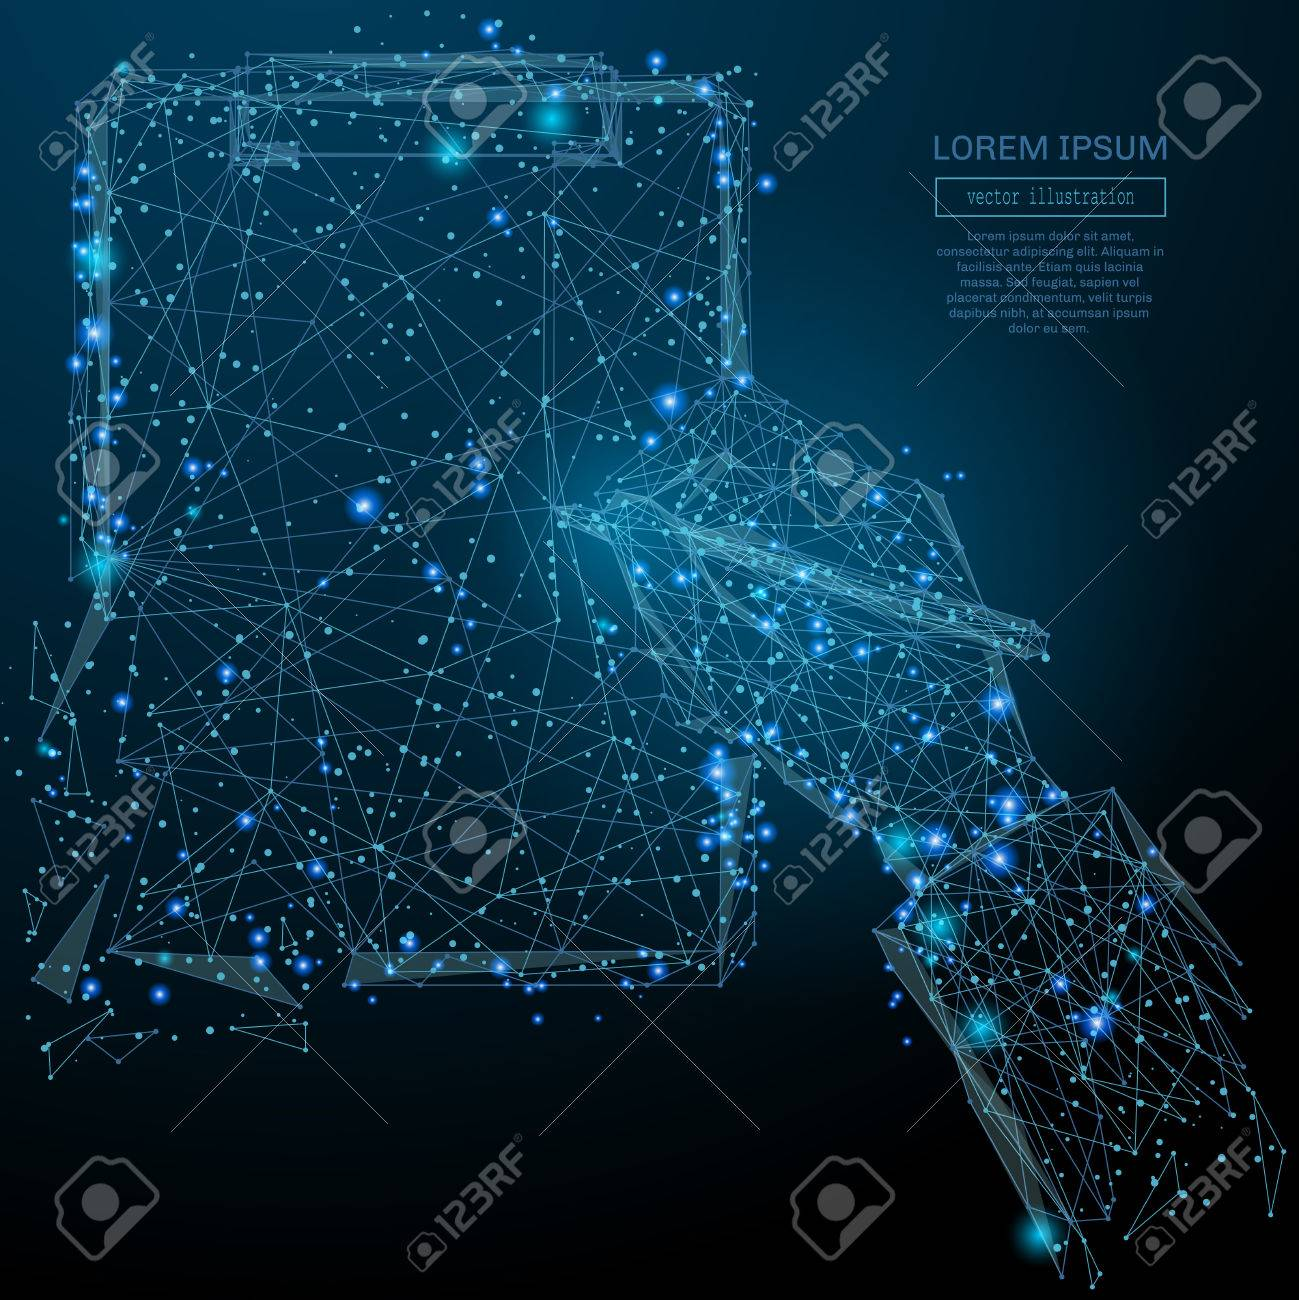 Abstract image of a man sings document in the form of a starry sky or space, consisting of points, lines, and shapes in the form of planets, stars and the universe. Vector business - 71763465